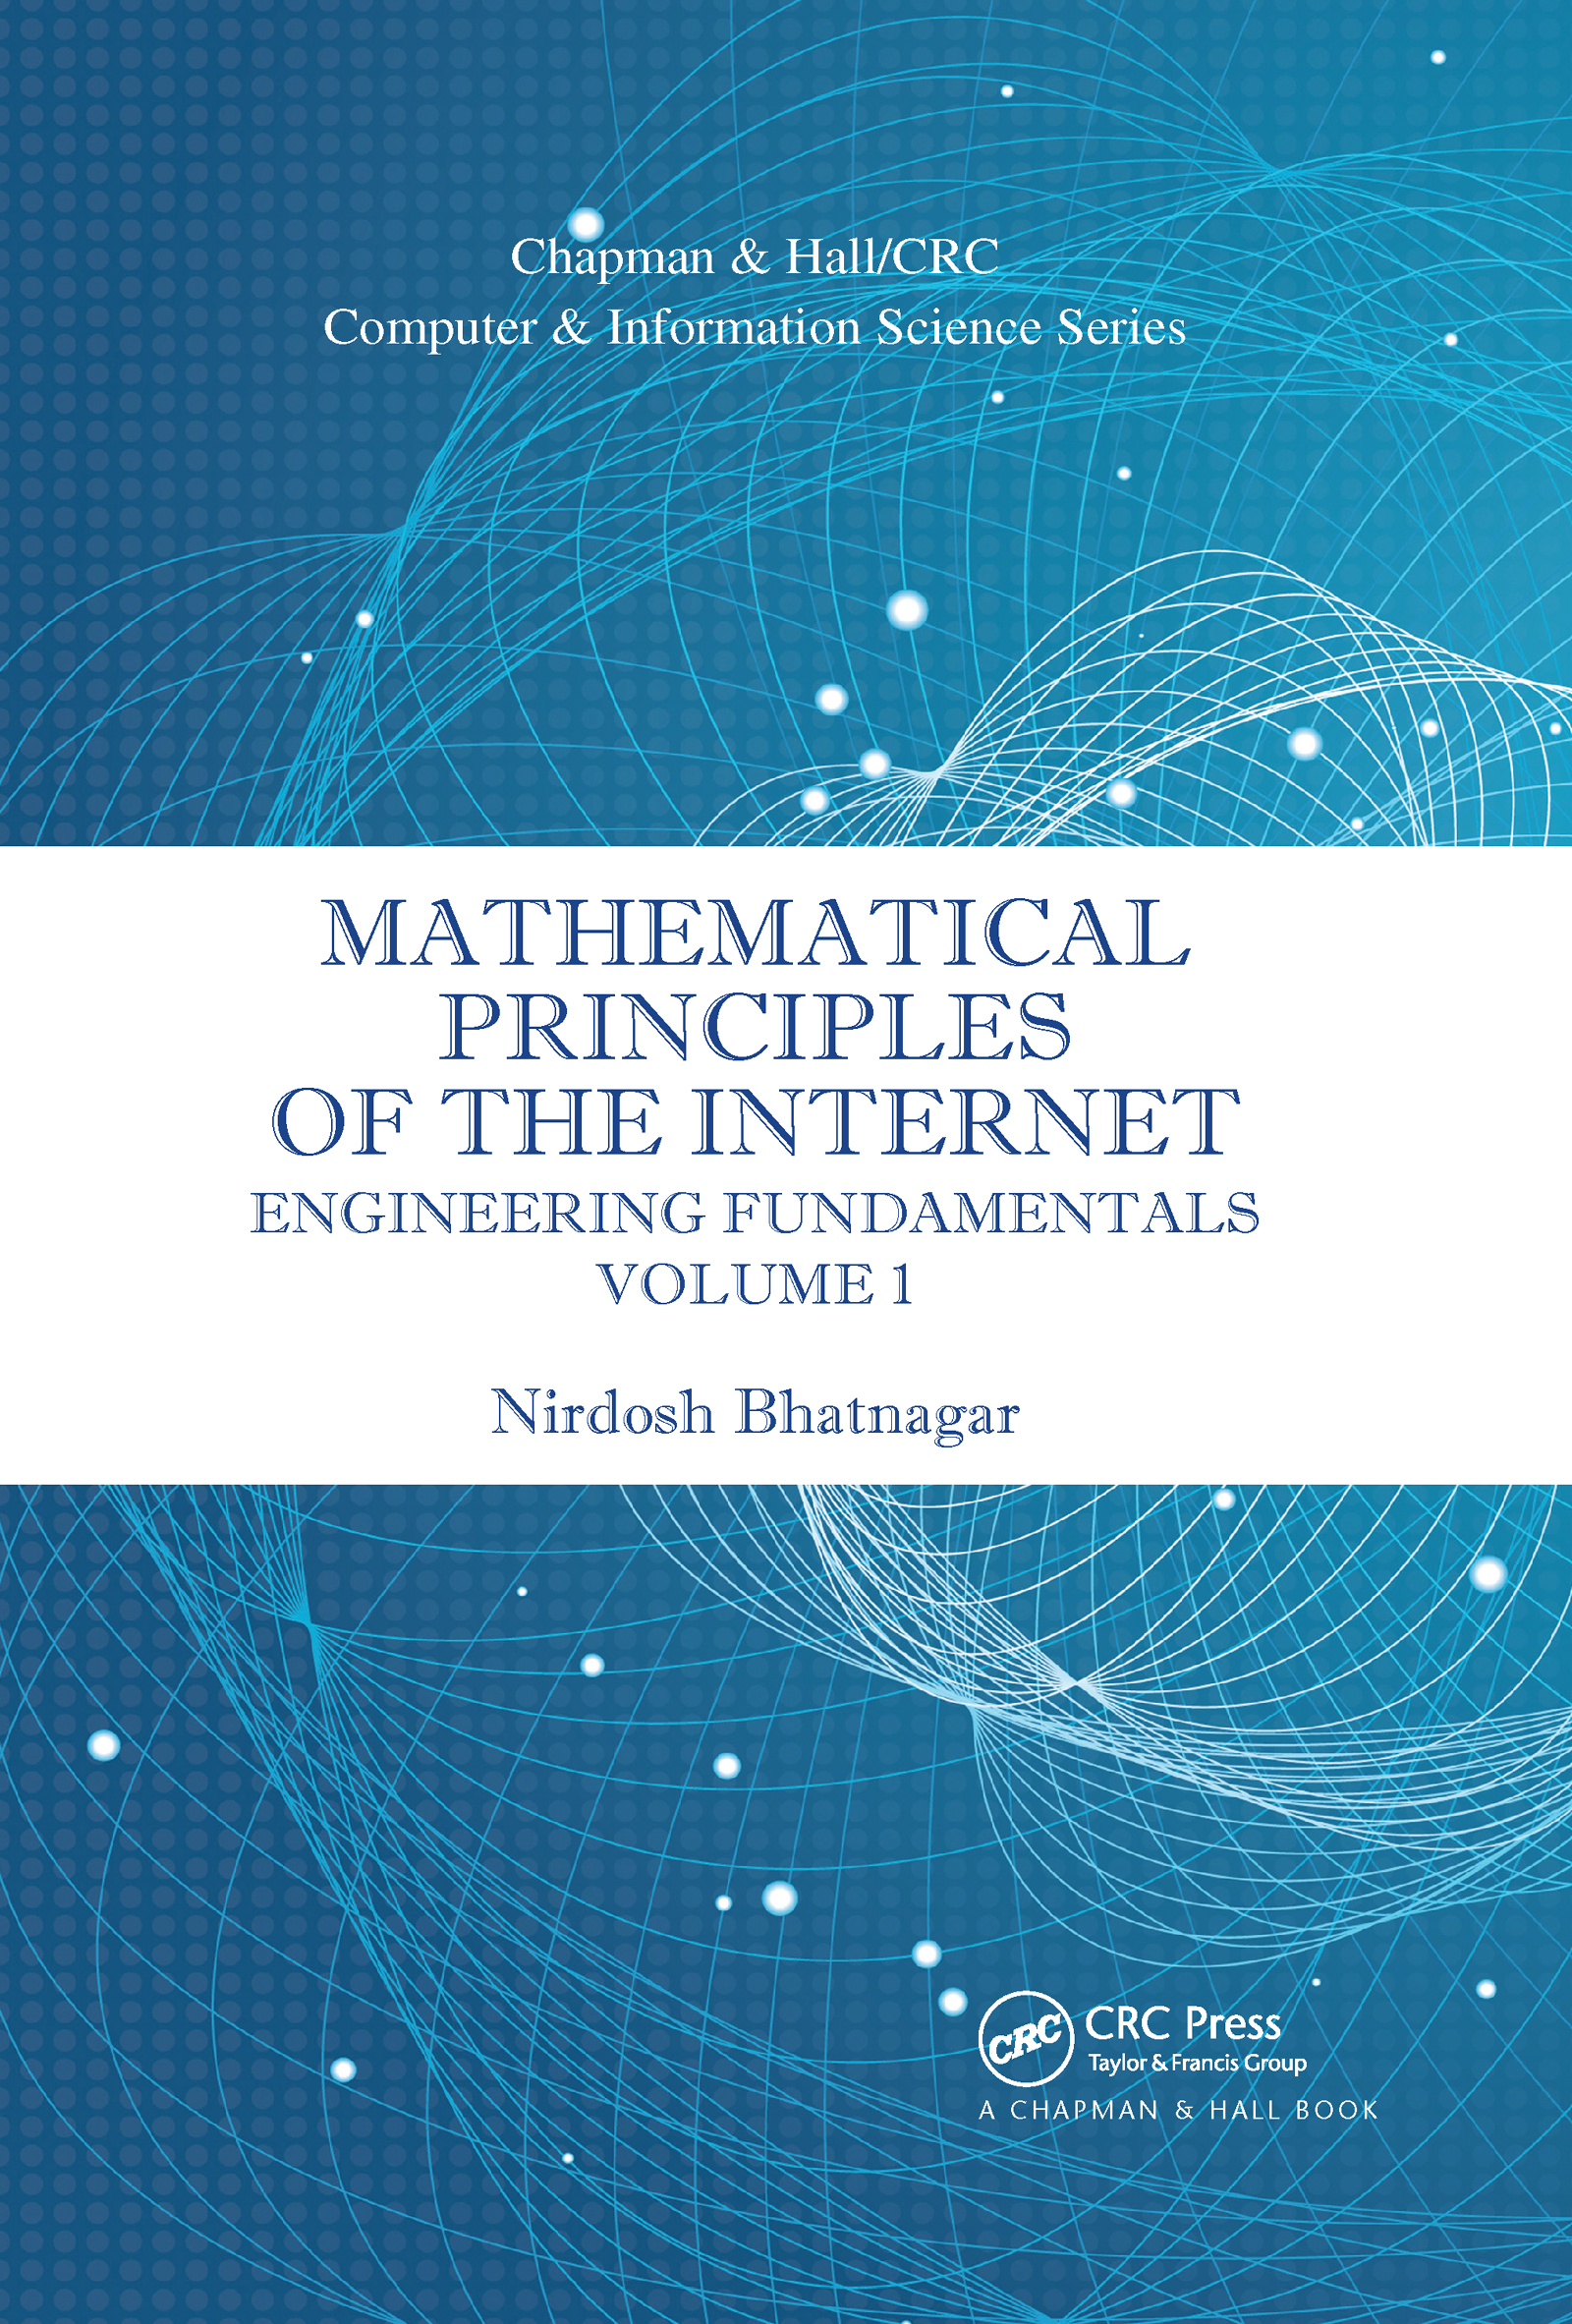 Mathematical Principles of the Internet, Volume 1